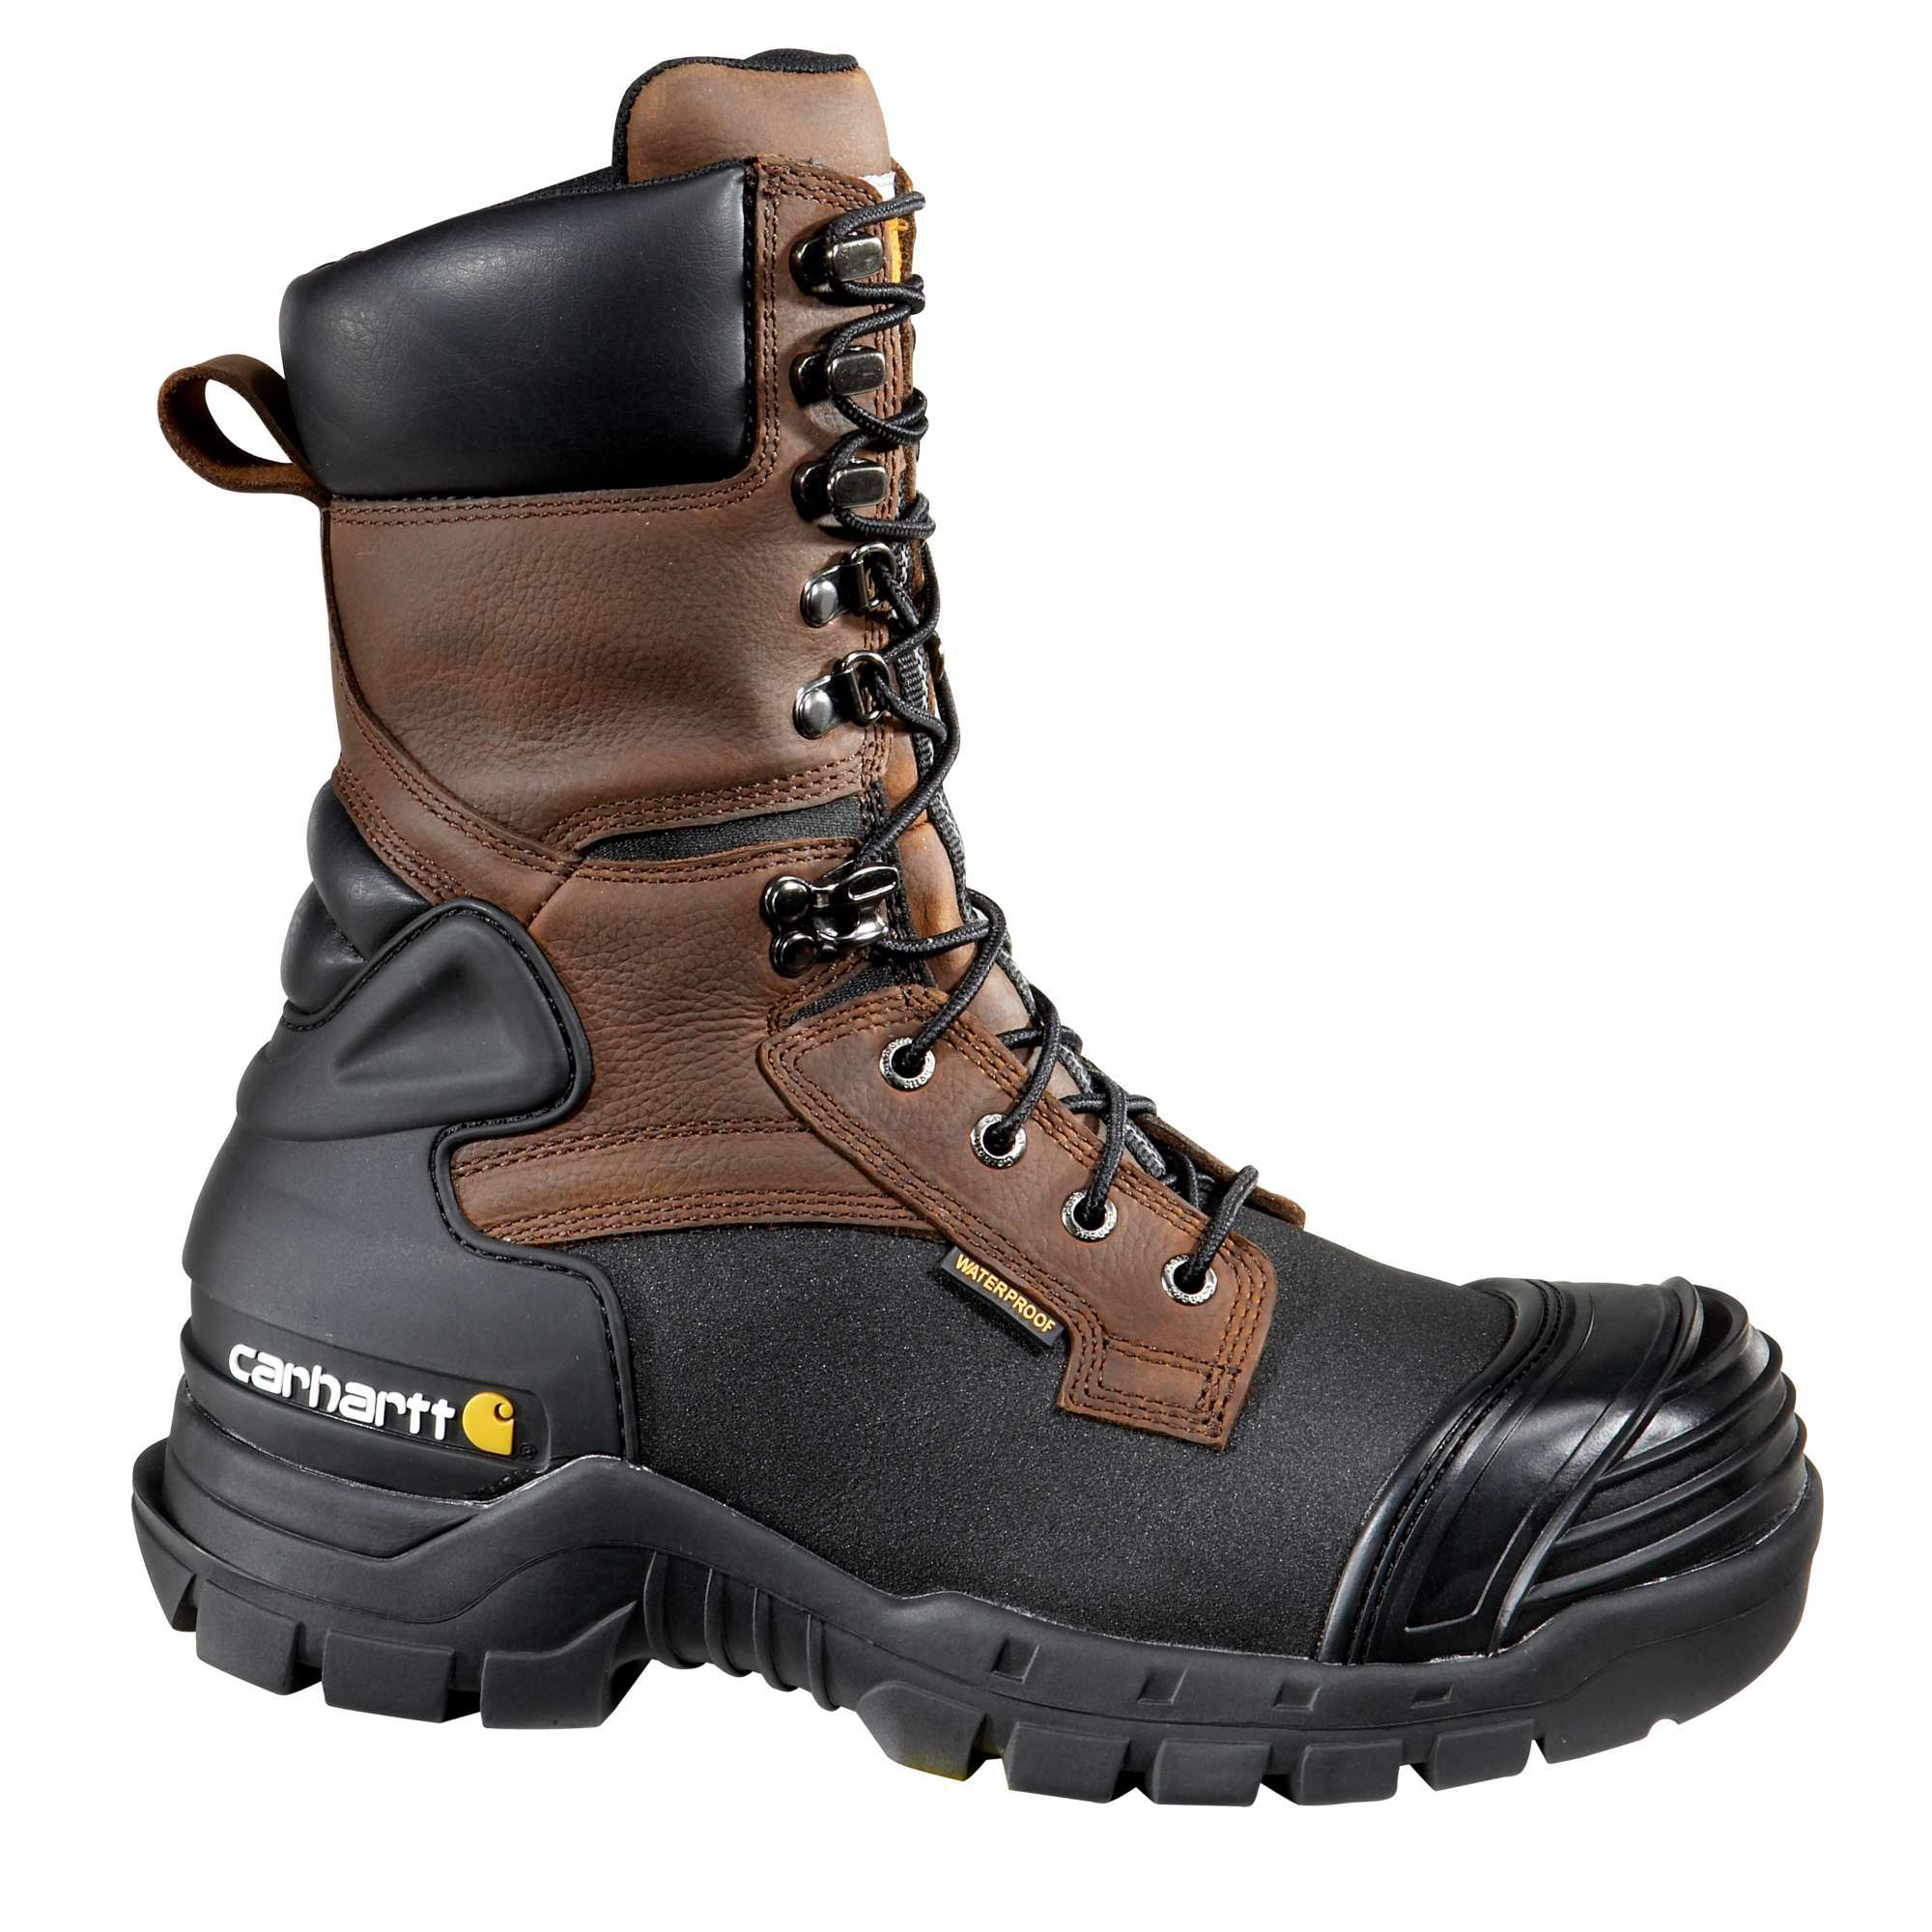 MEN'S 10-INCH INSULATED COMPOSITE TOE PAC BOOT